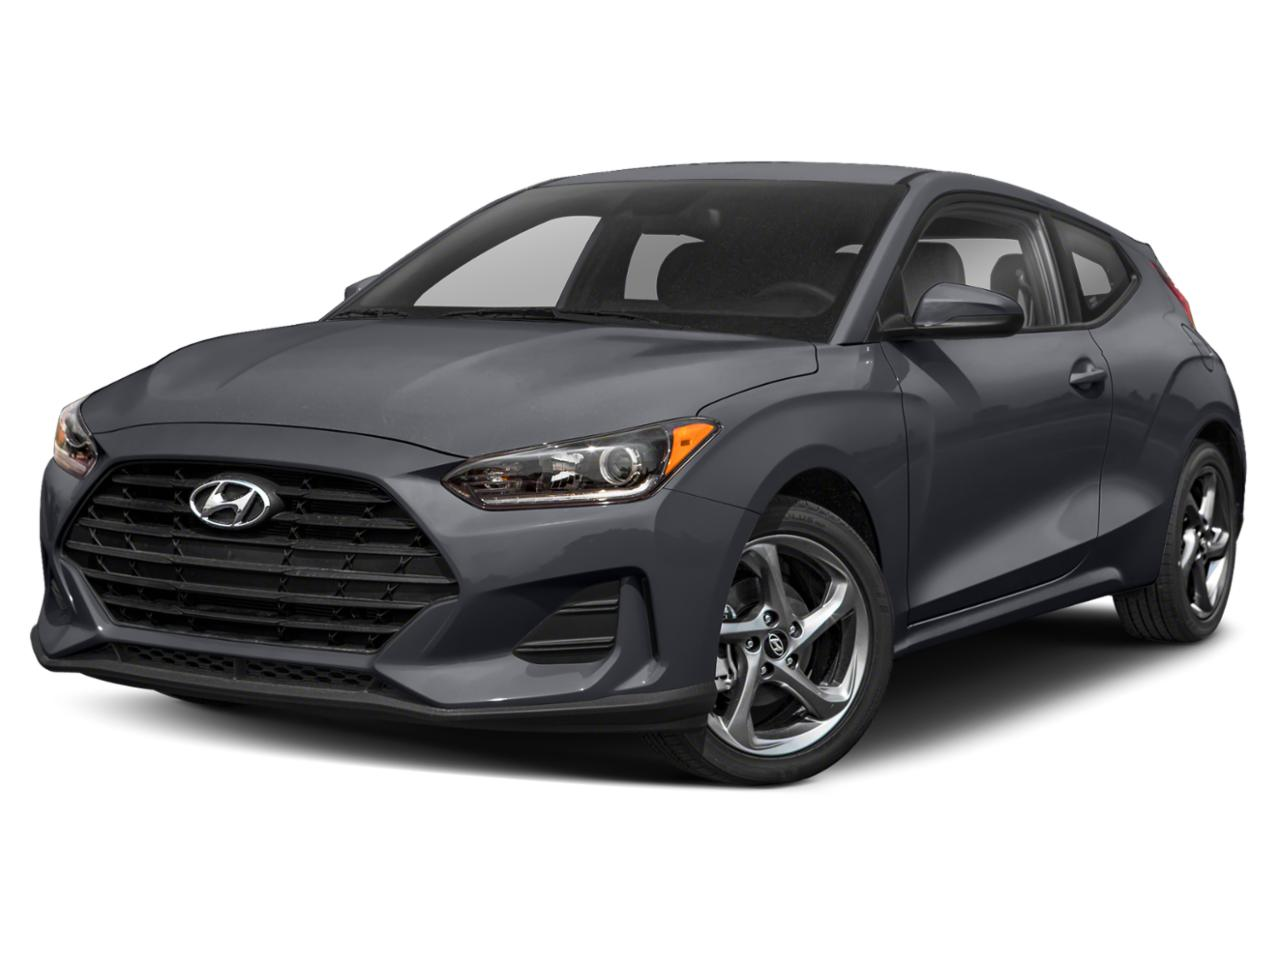 2020 Hyundai Veloster Vehicle Photo in Muncy, PA 17756